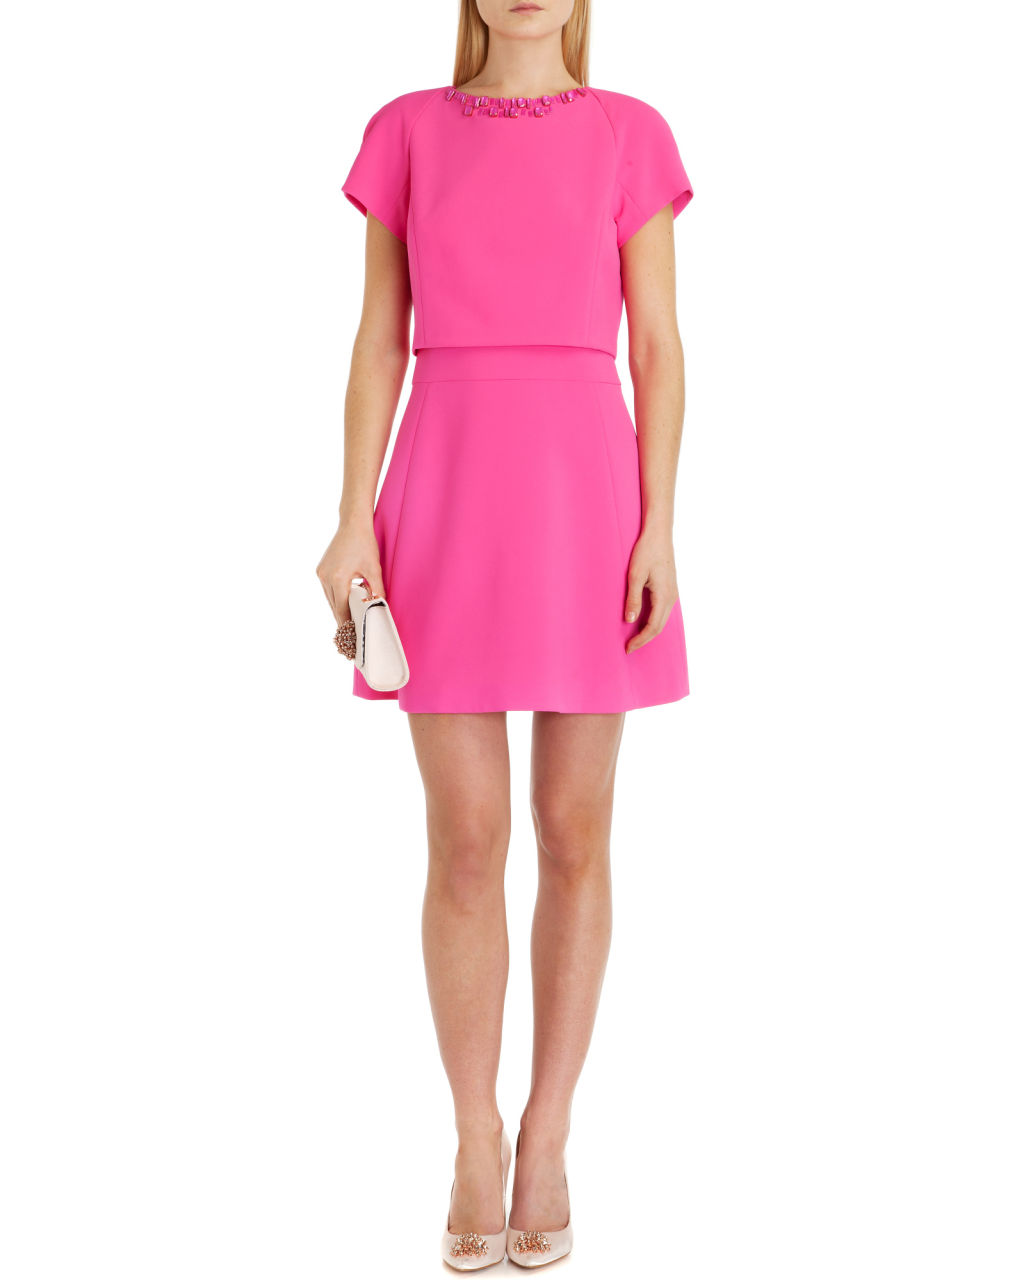 uk-Womens-Clothing-Dresses-FOPPAR-Embellished-dress-Mid-Pink-WA4W_FOPPAR_53-MID-PINK_2.jpg